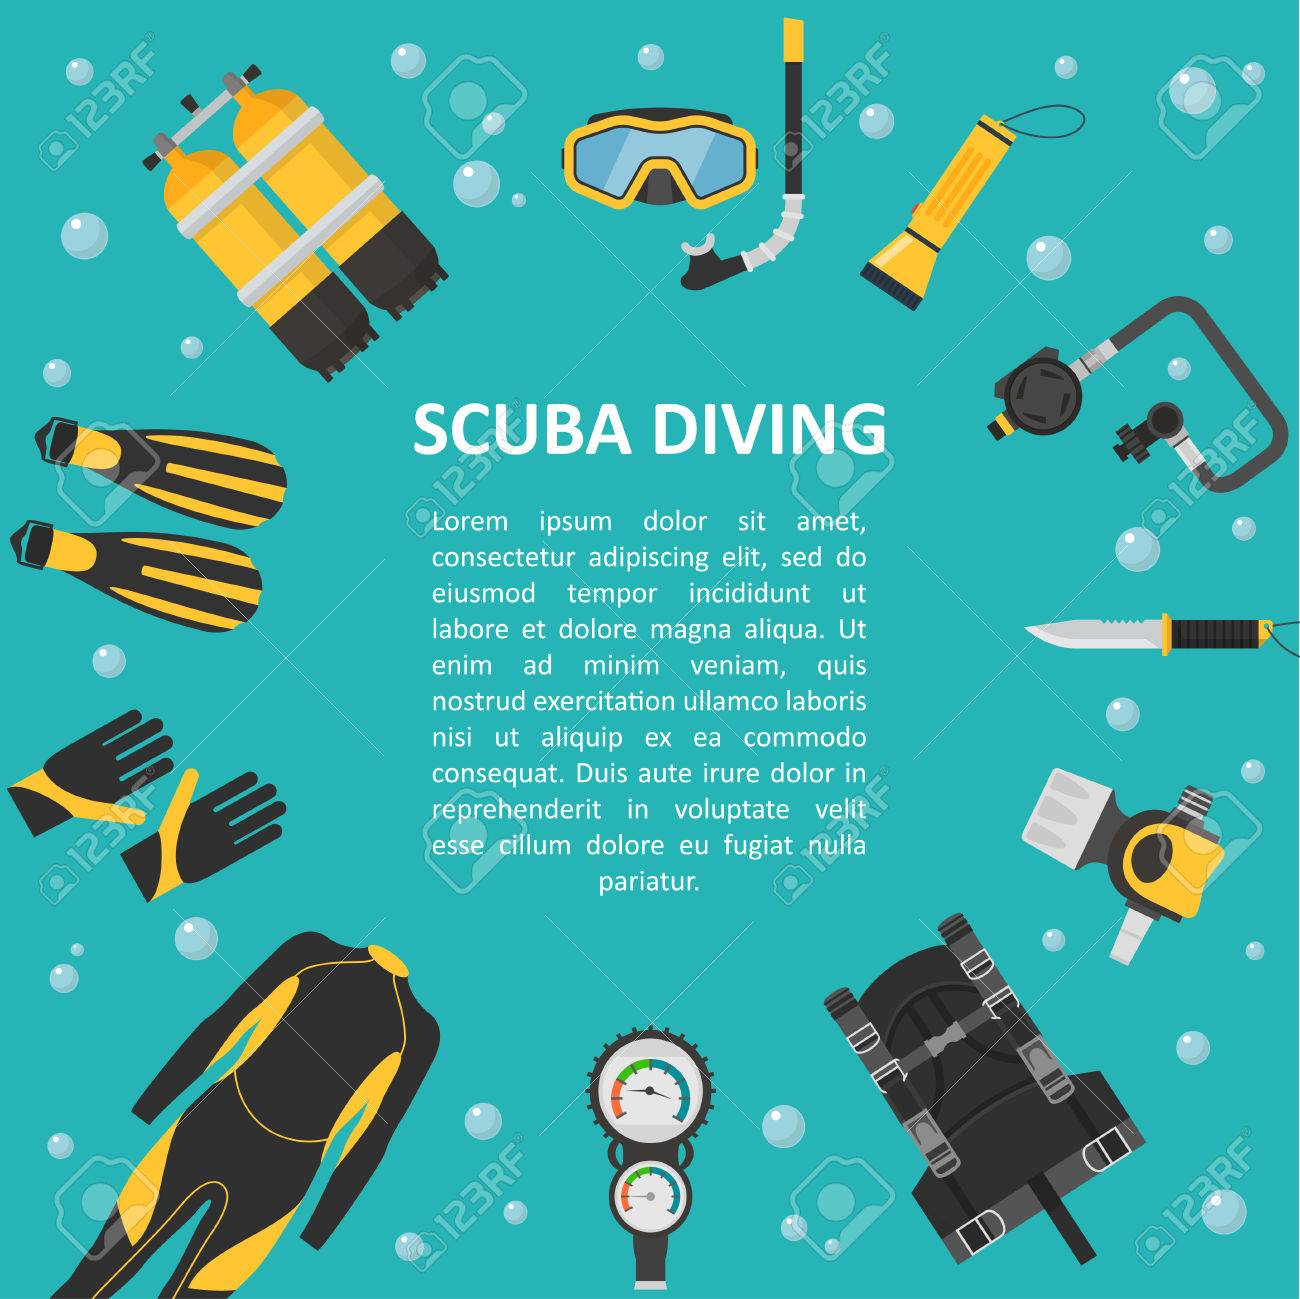 Scuba Diving Background In A Flat Style Poster Template Equipment And Accessories Banner